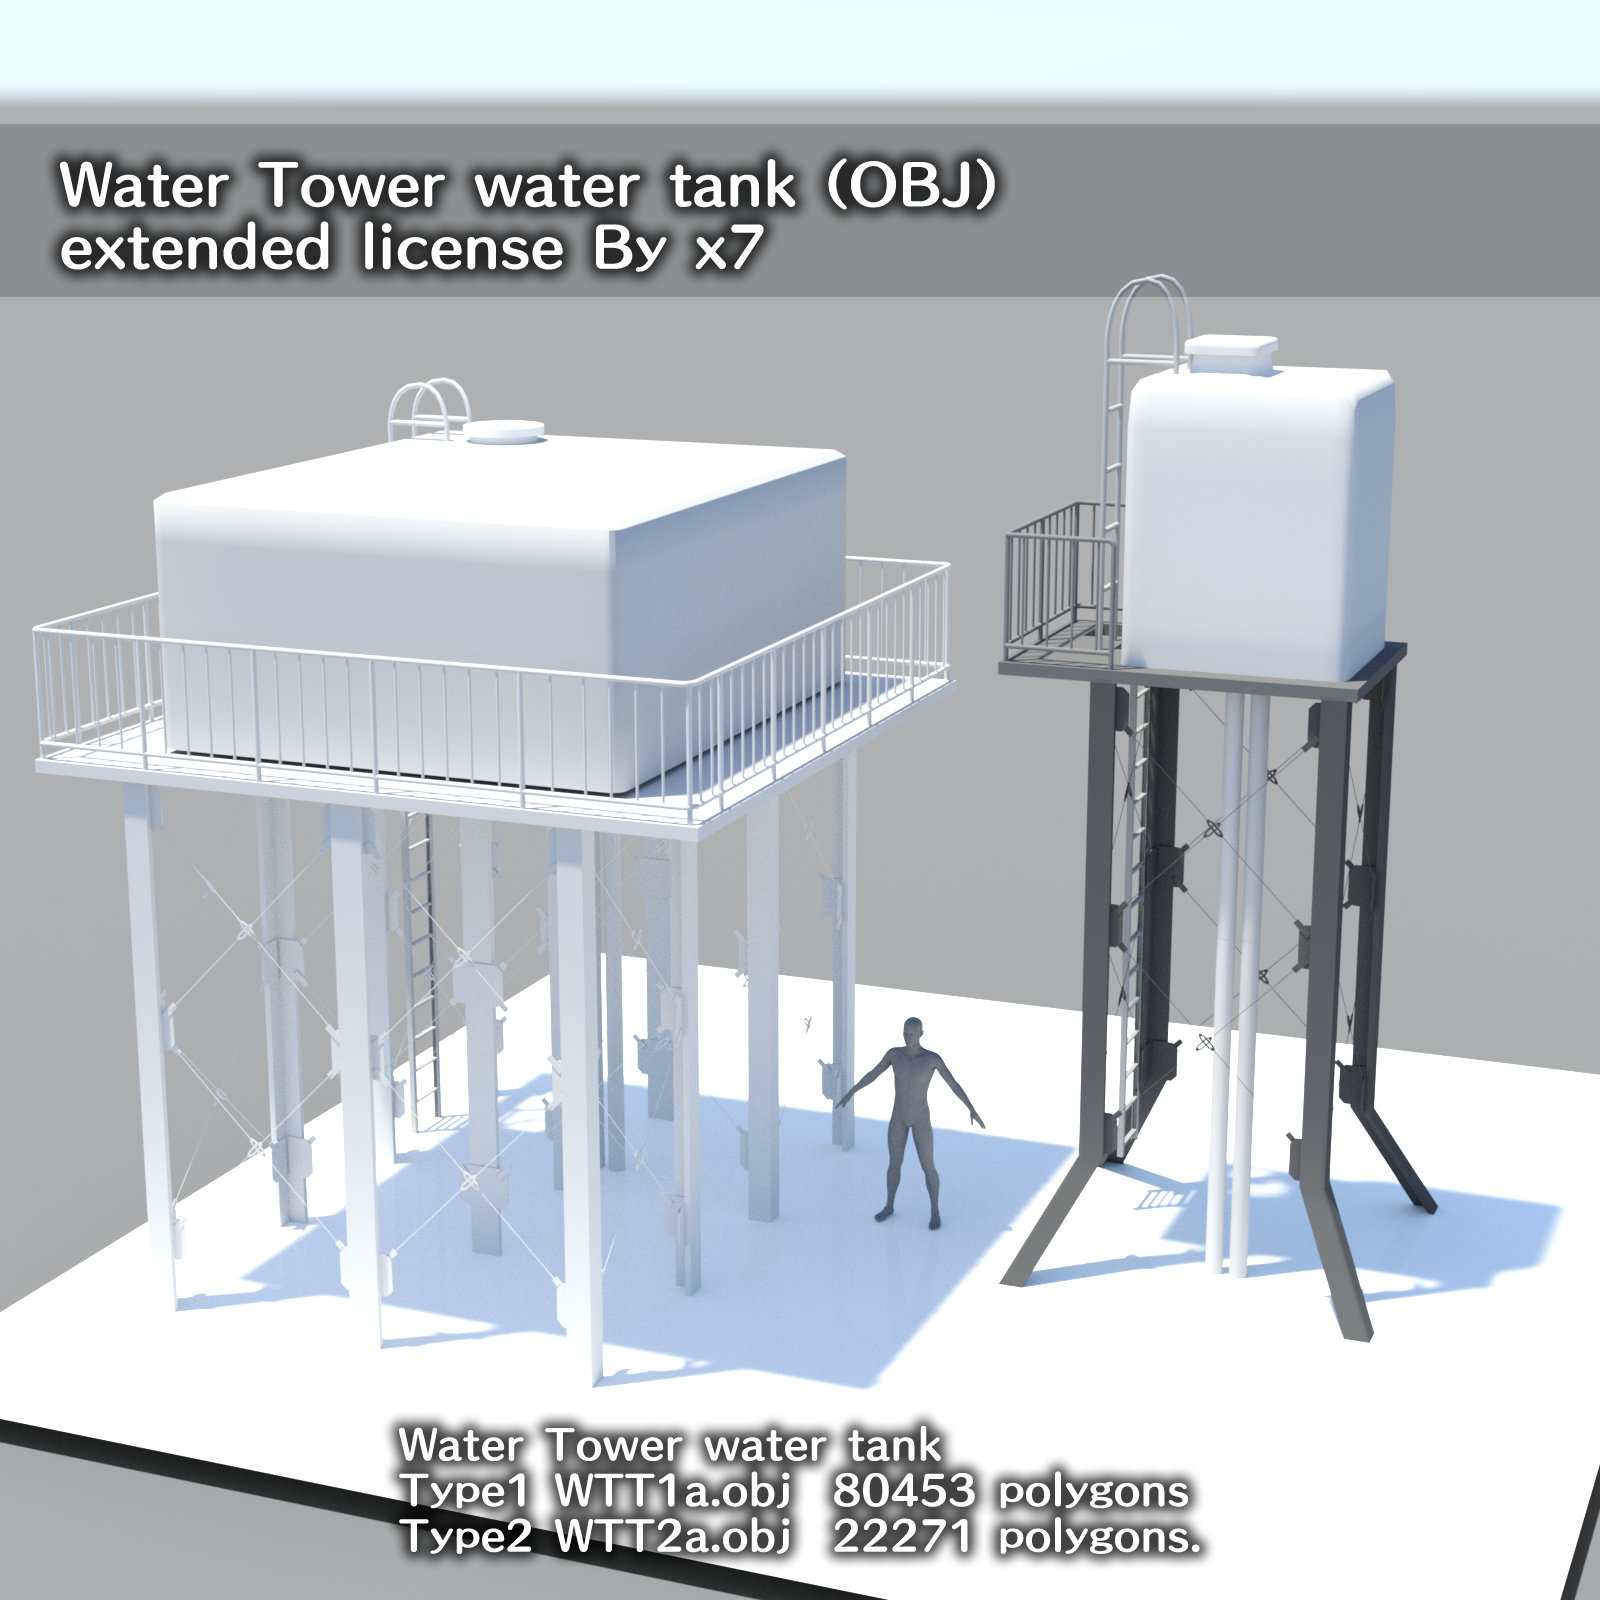 Water Tower water tank (OBJ) extended license By x7